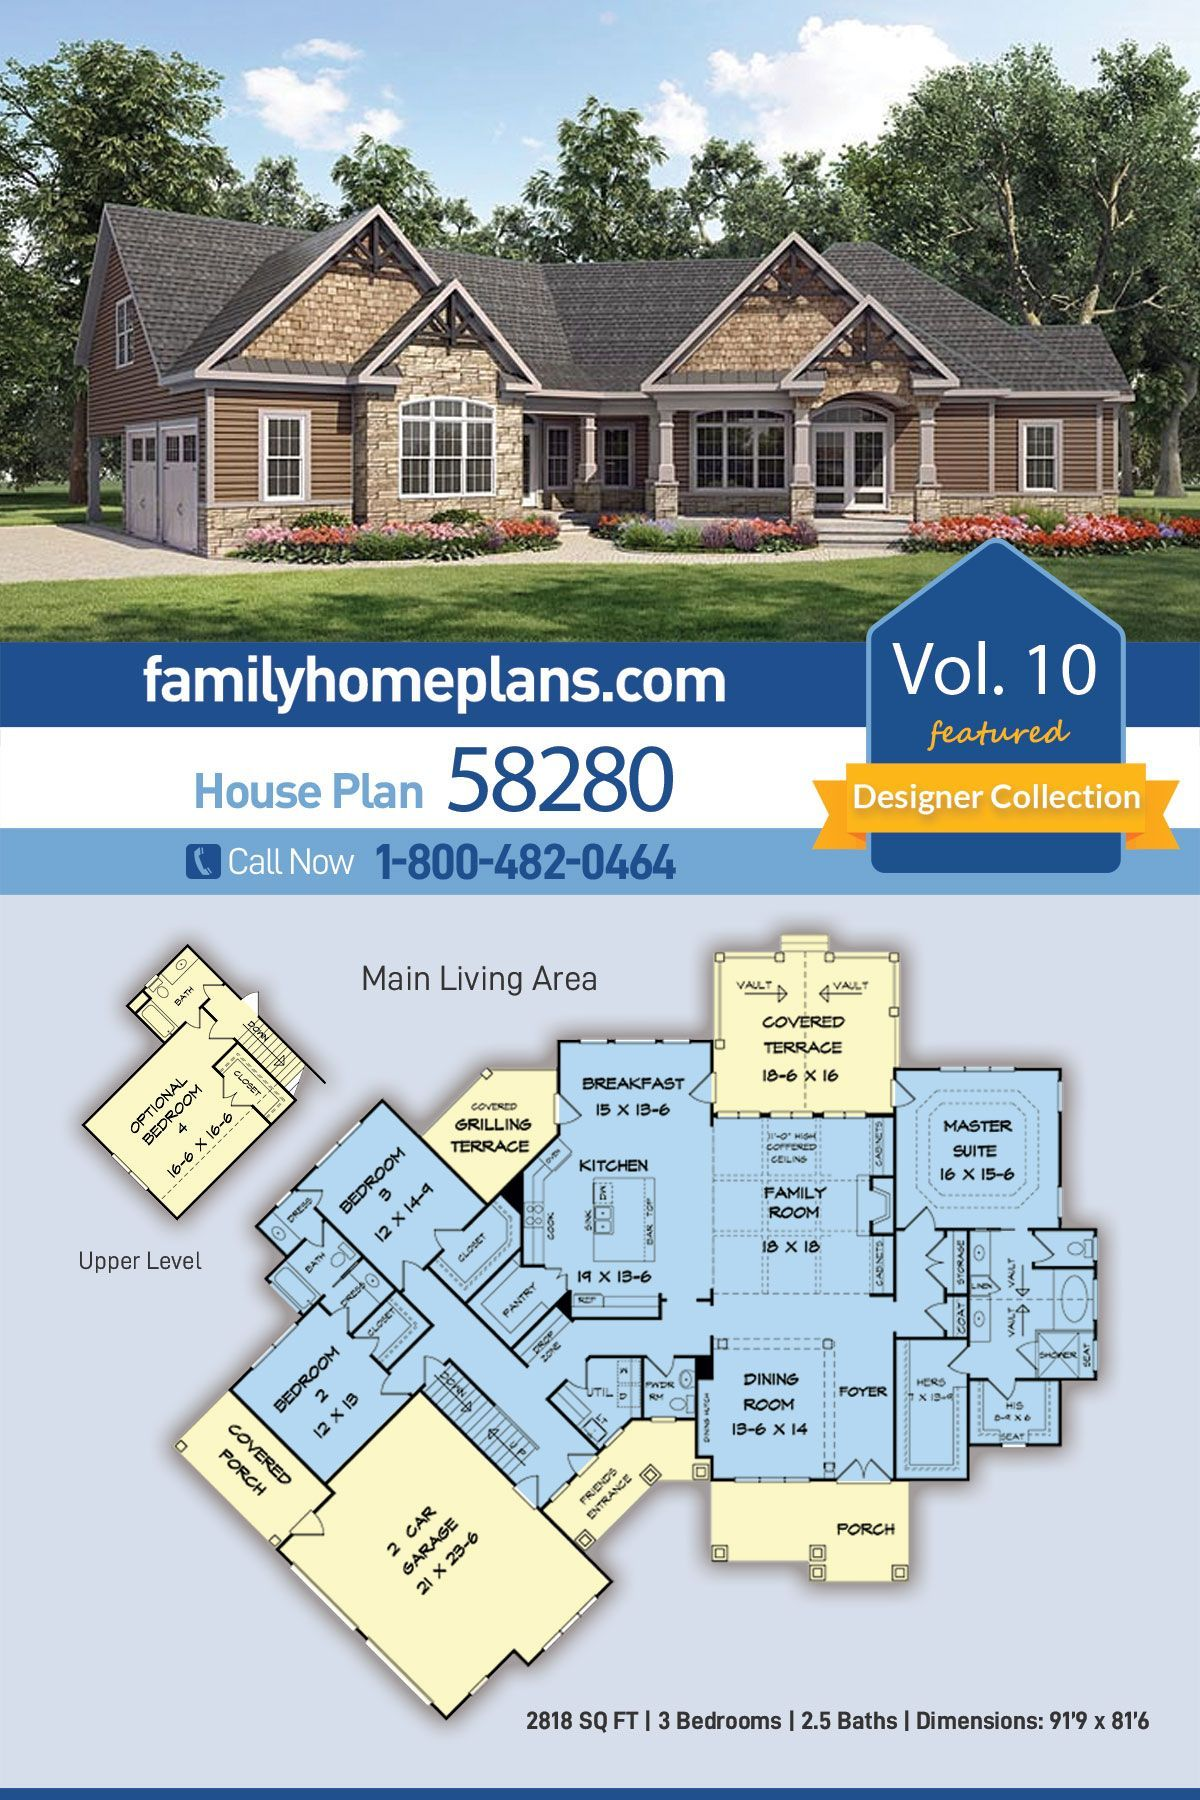 One Story Craftsman Home Floor Plan 58280 Has Great Design Features Three Bedrooms 2818 Squa In 2020 Craftsman House Plans Craftsman Style House Plans Craftsman House